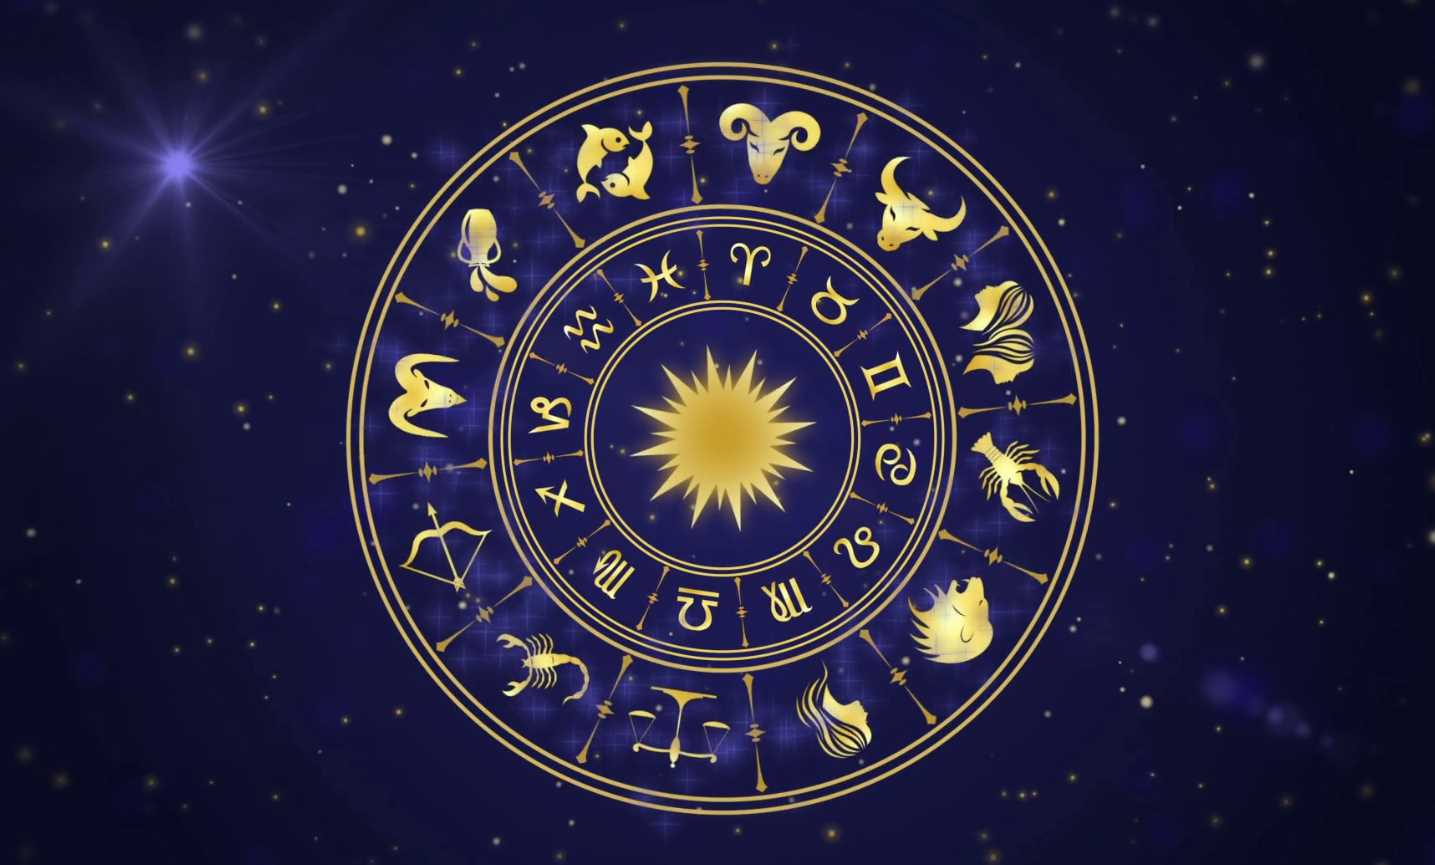 Pin by Victor on ♌️ LEO♌️ in 2020 | Birthday personality  |Horoscop 14 August 2020